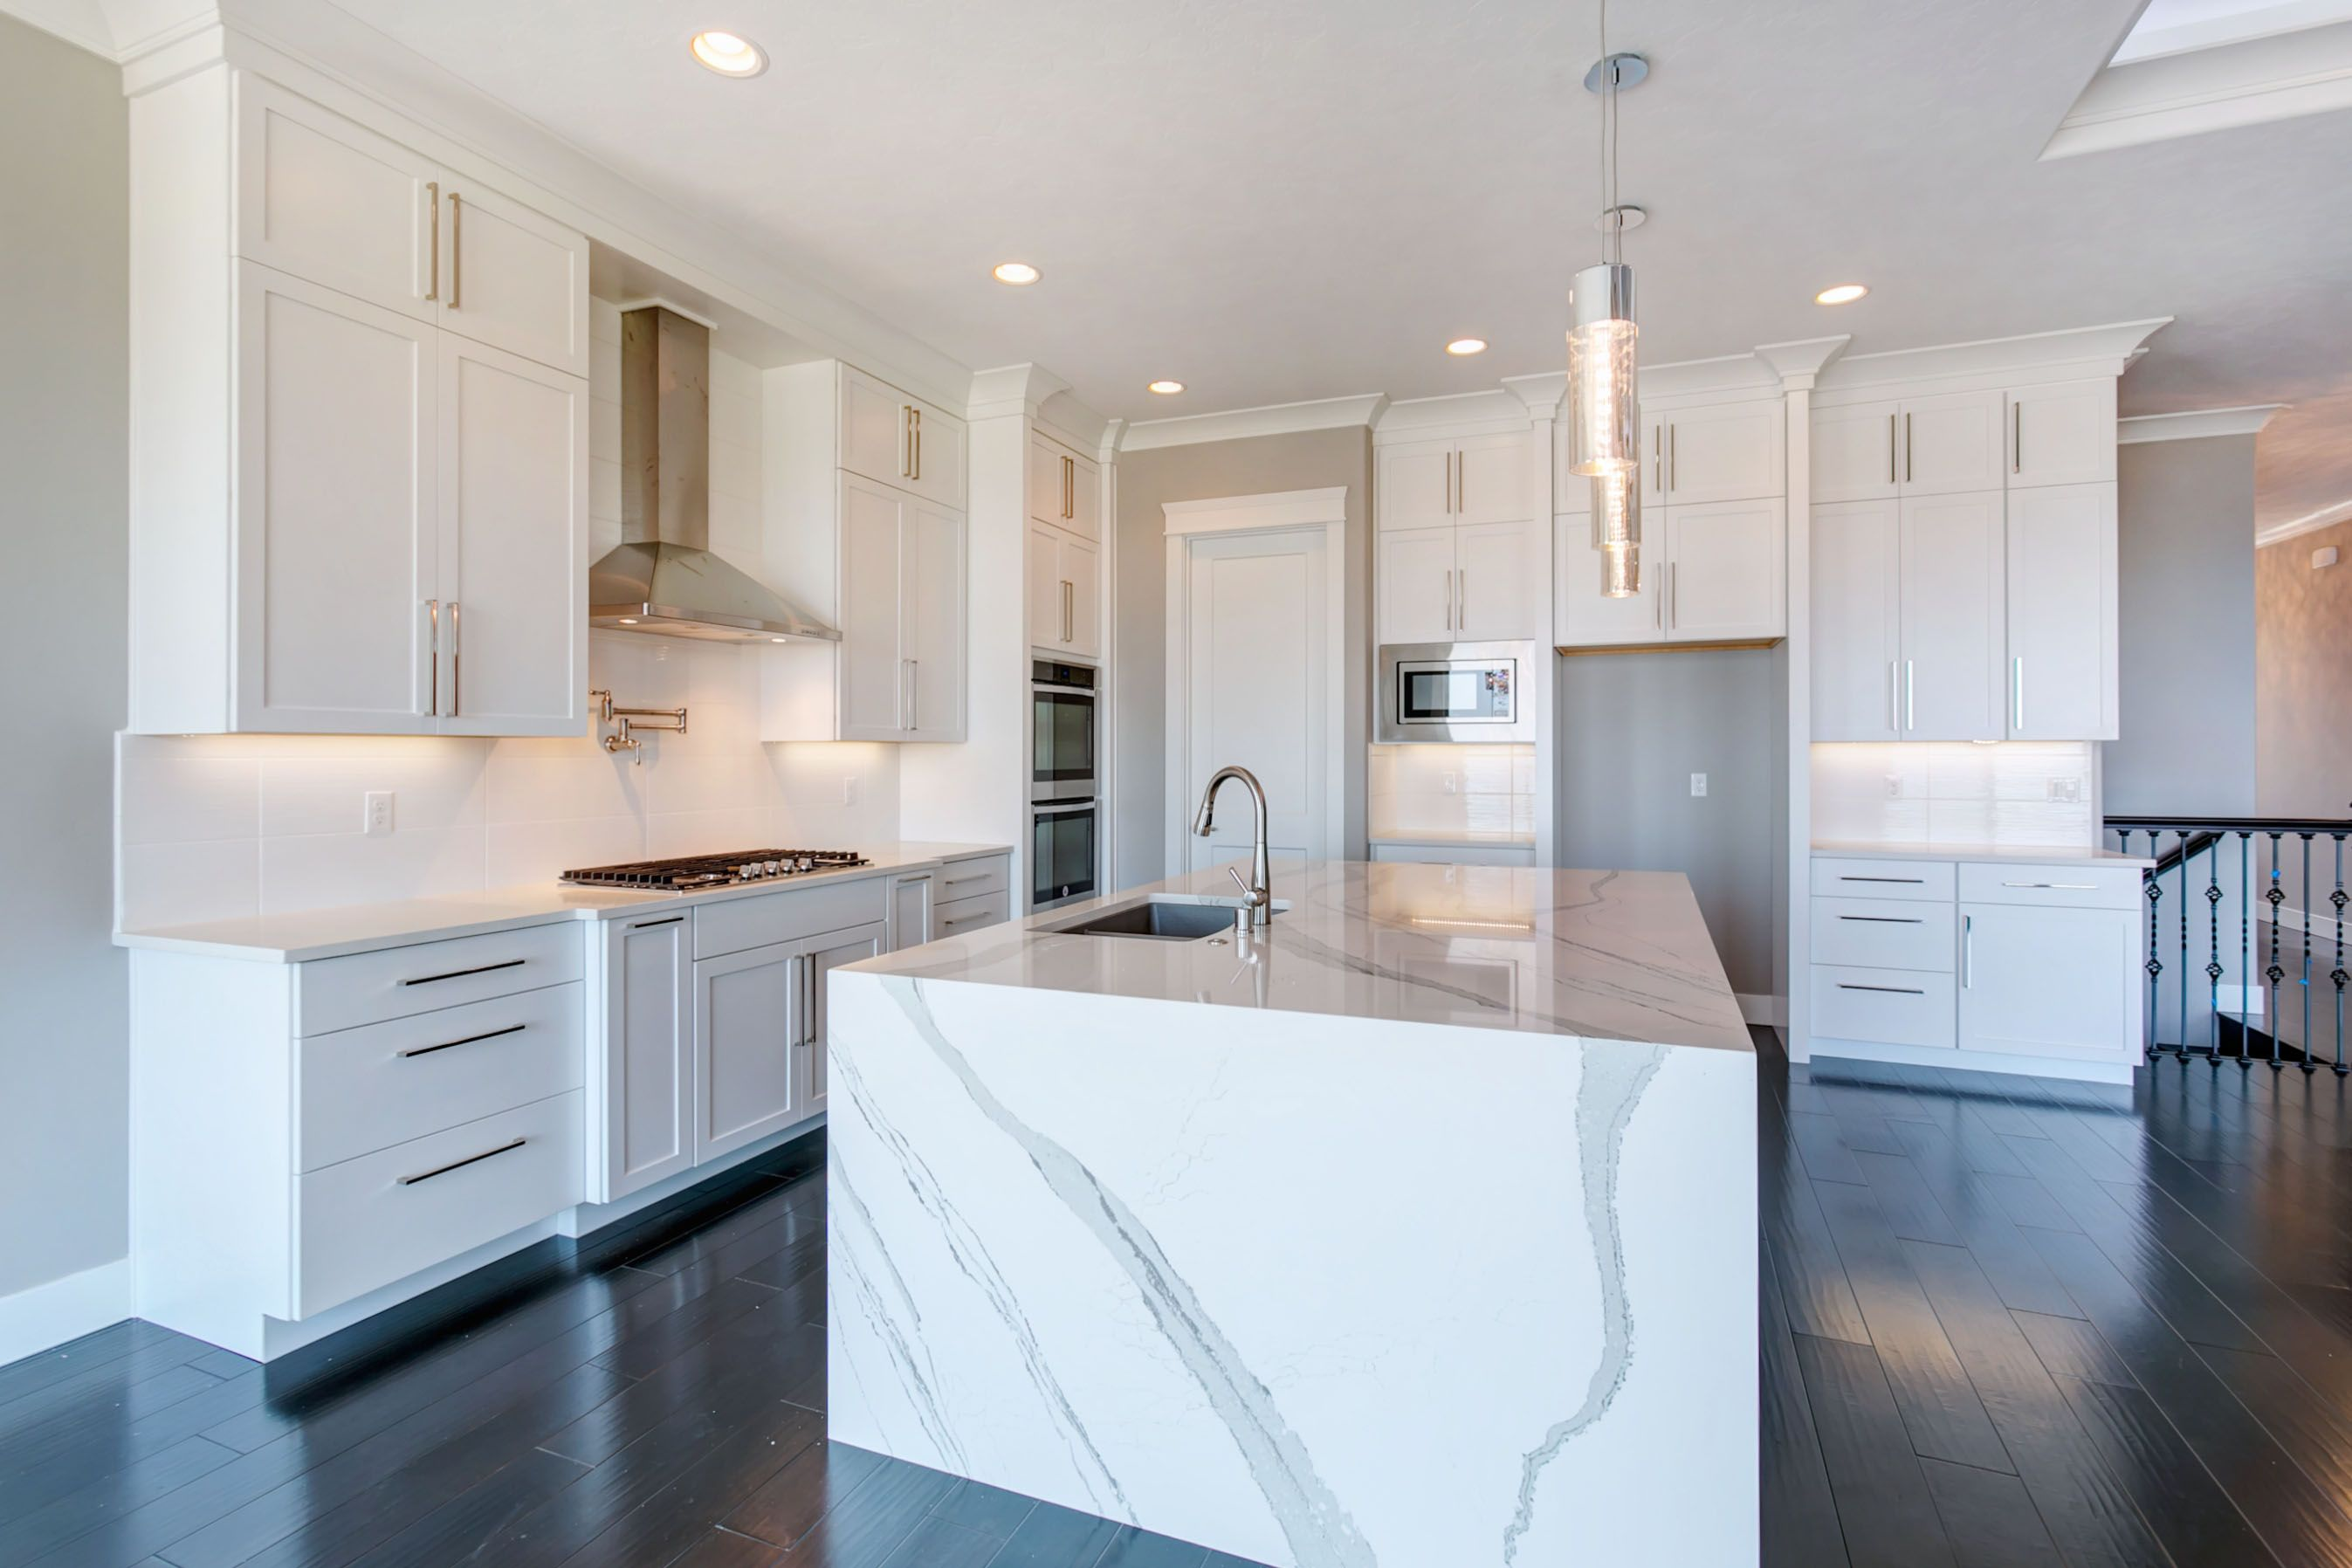 Photo Gallery Prodigy Homes Inc Waterfall Countertop Waterfall Island Kitchen Countertop Design